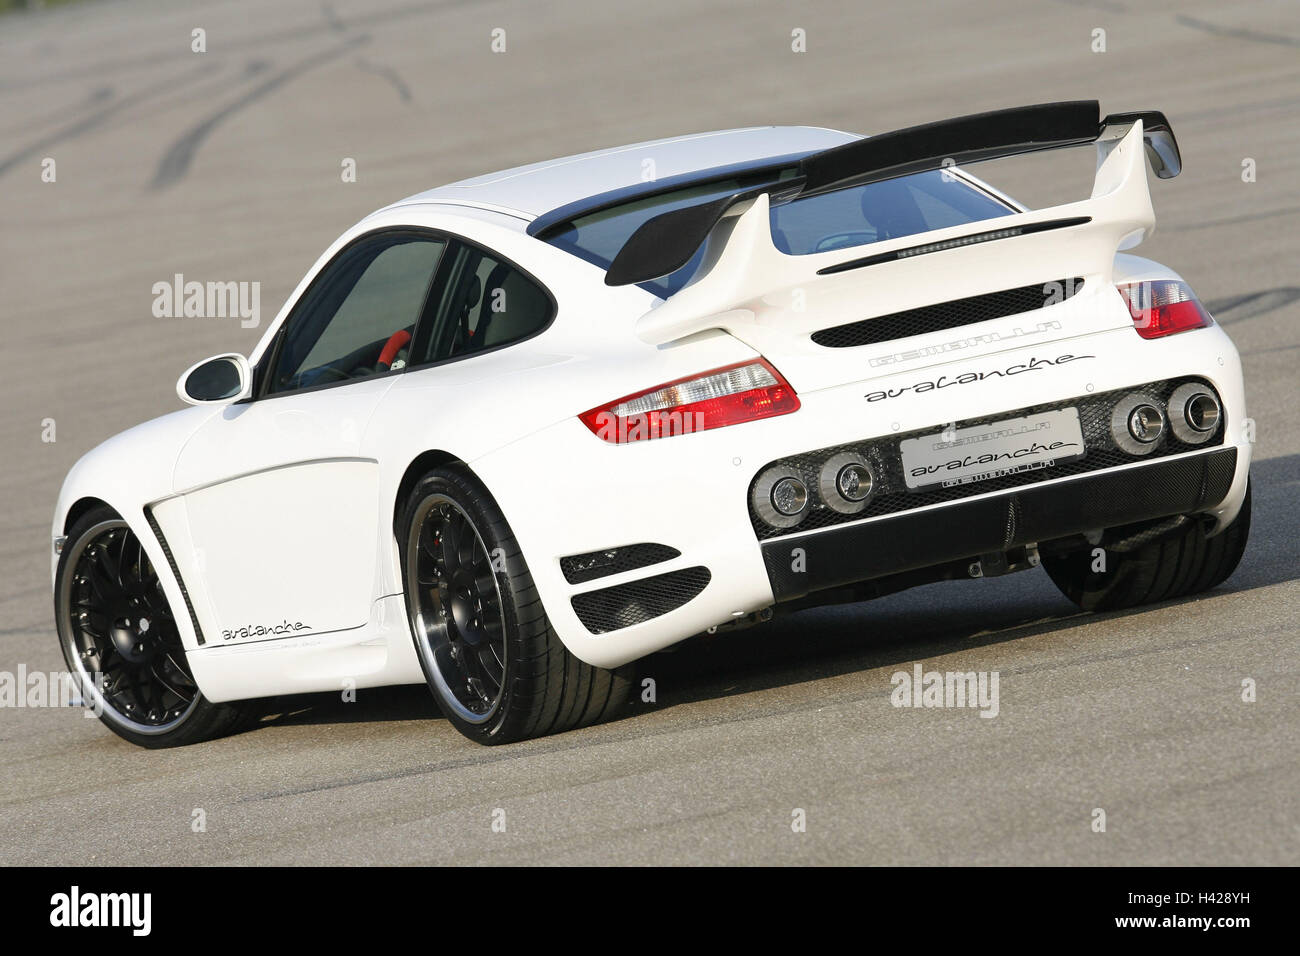 Gemballa Porsche, Avalanche, white, diagonally, rear view, aslant, - Stock Image